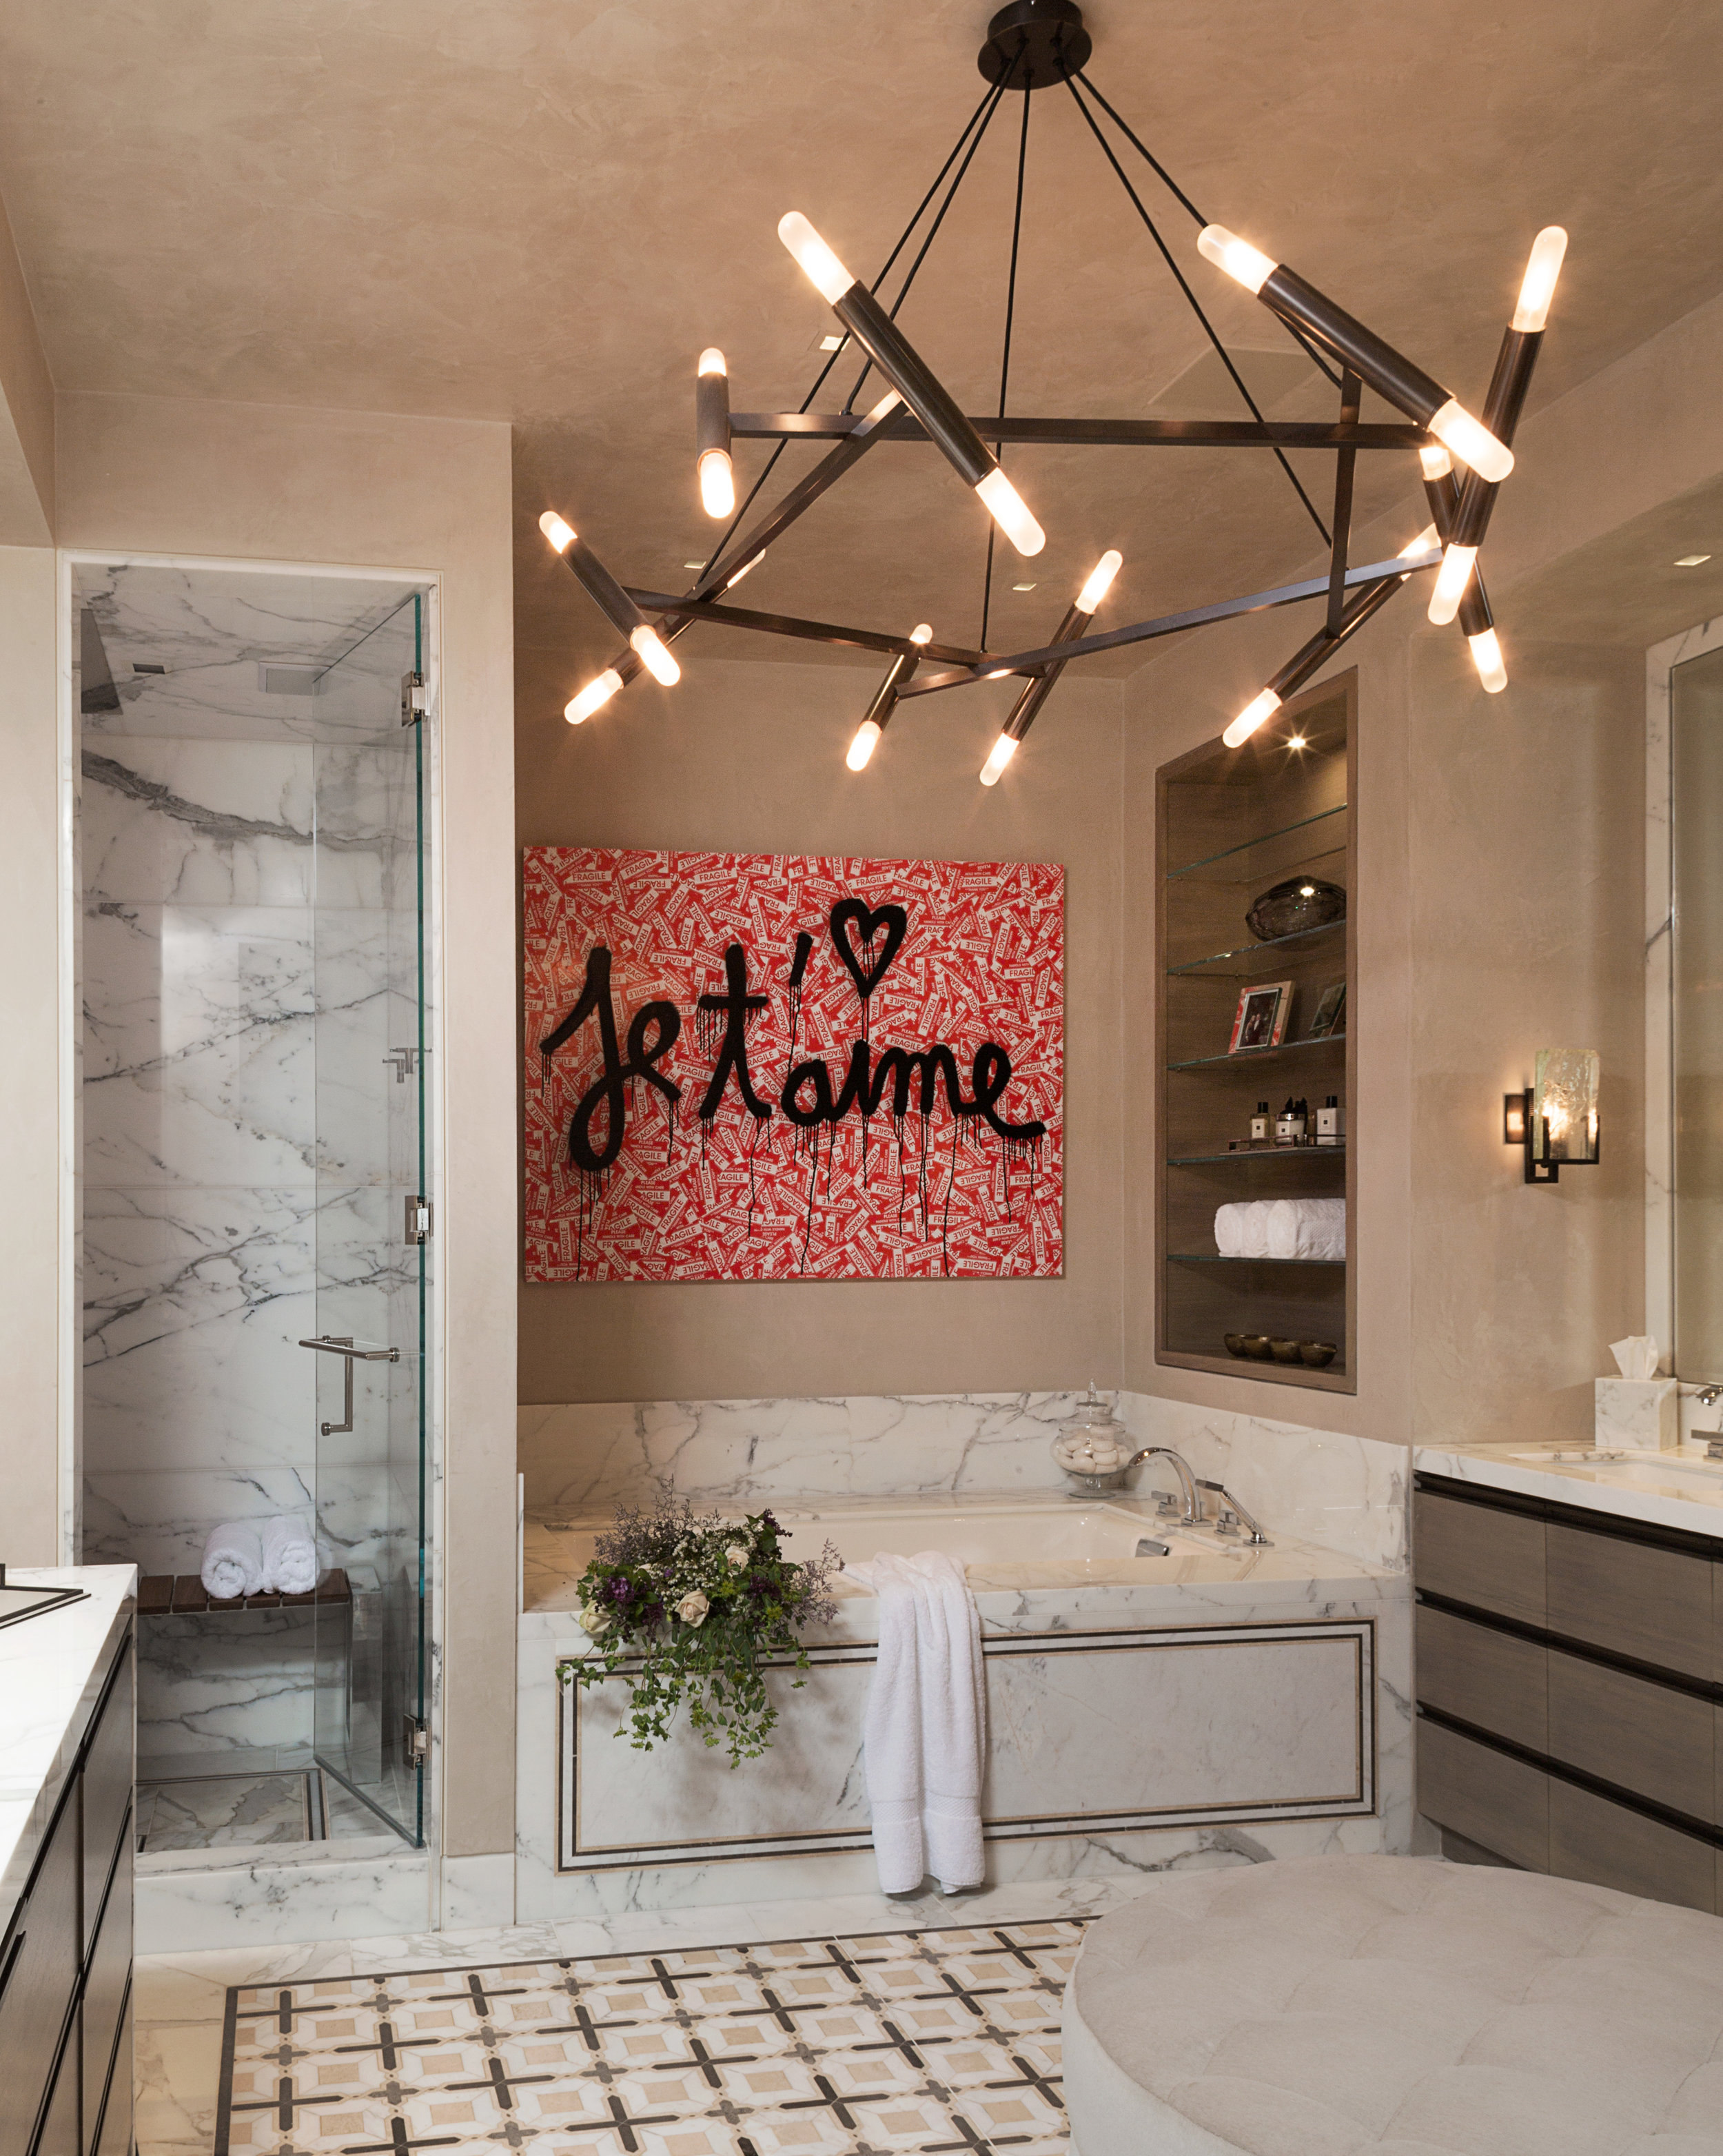 An inspired mix of contemporary art by Mr Brainwash and David Sutherland ceiling light